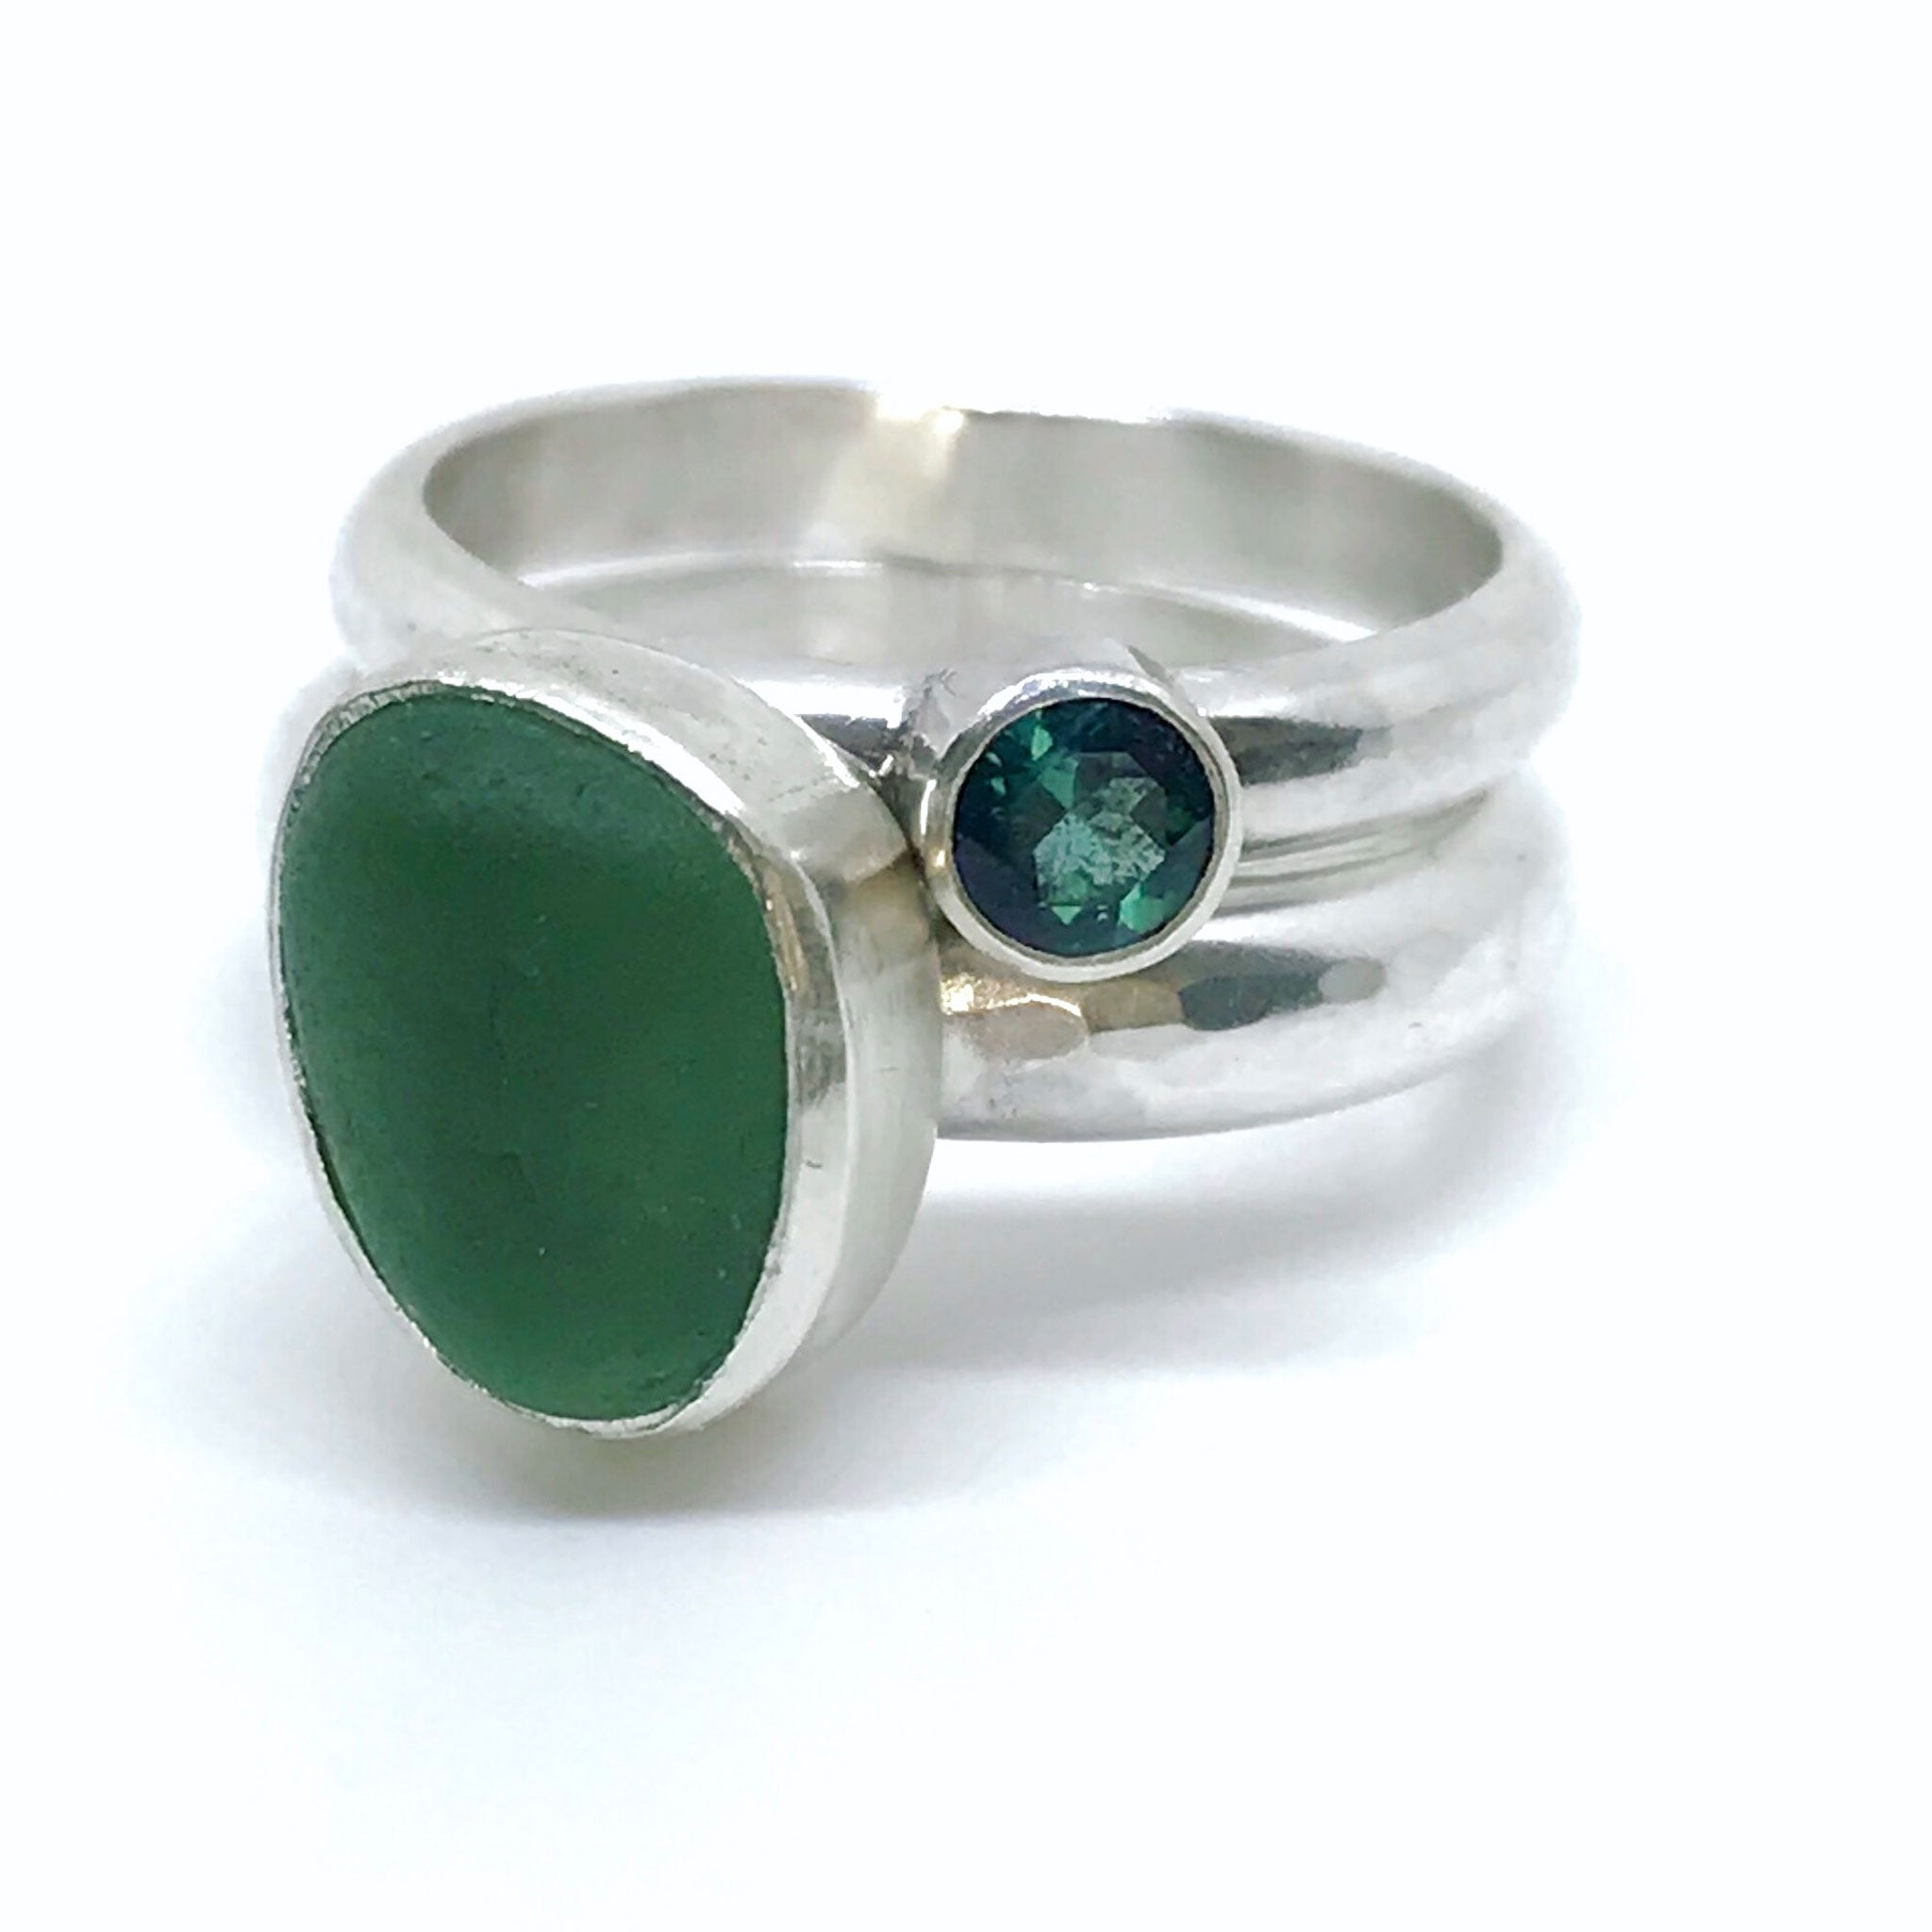 green seaglass ring stacked with blue green  tourmaline  ring kriket broadhurst jewellery